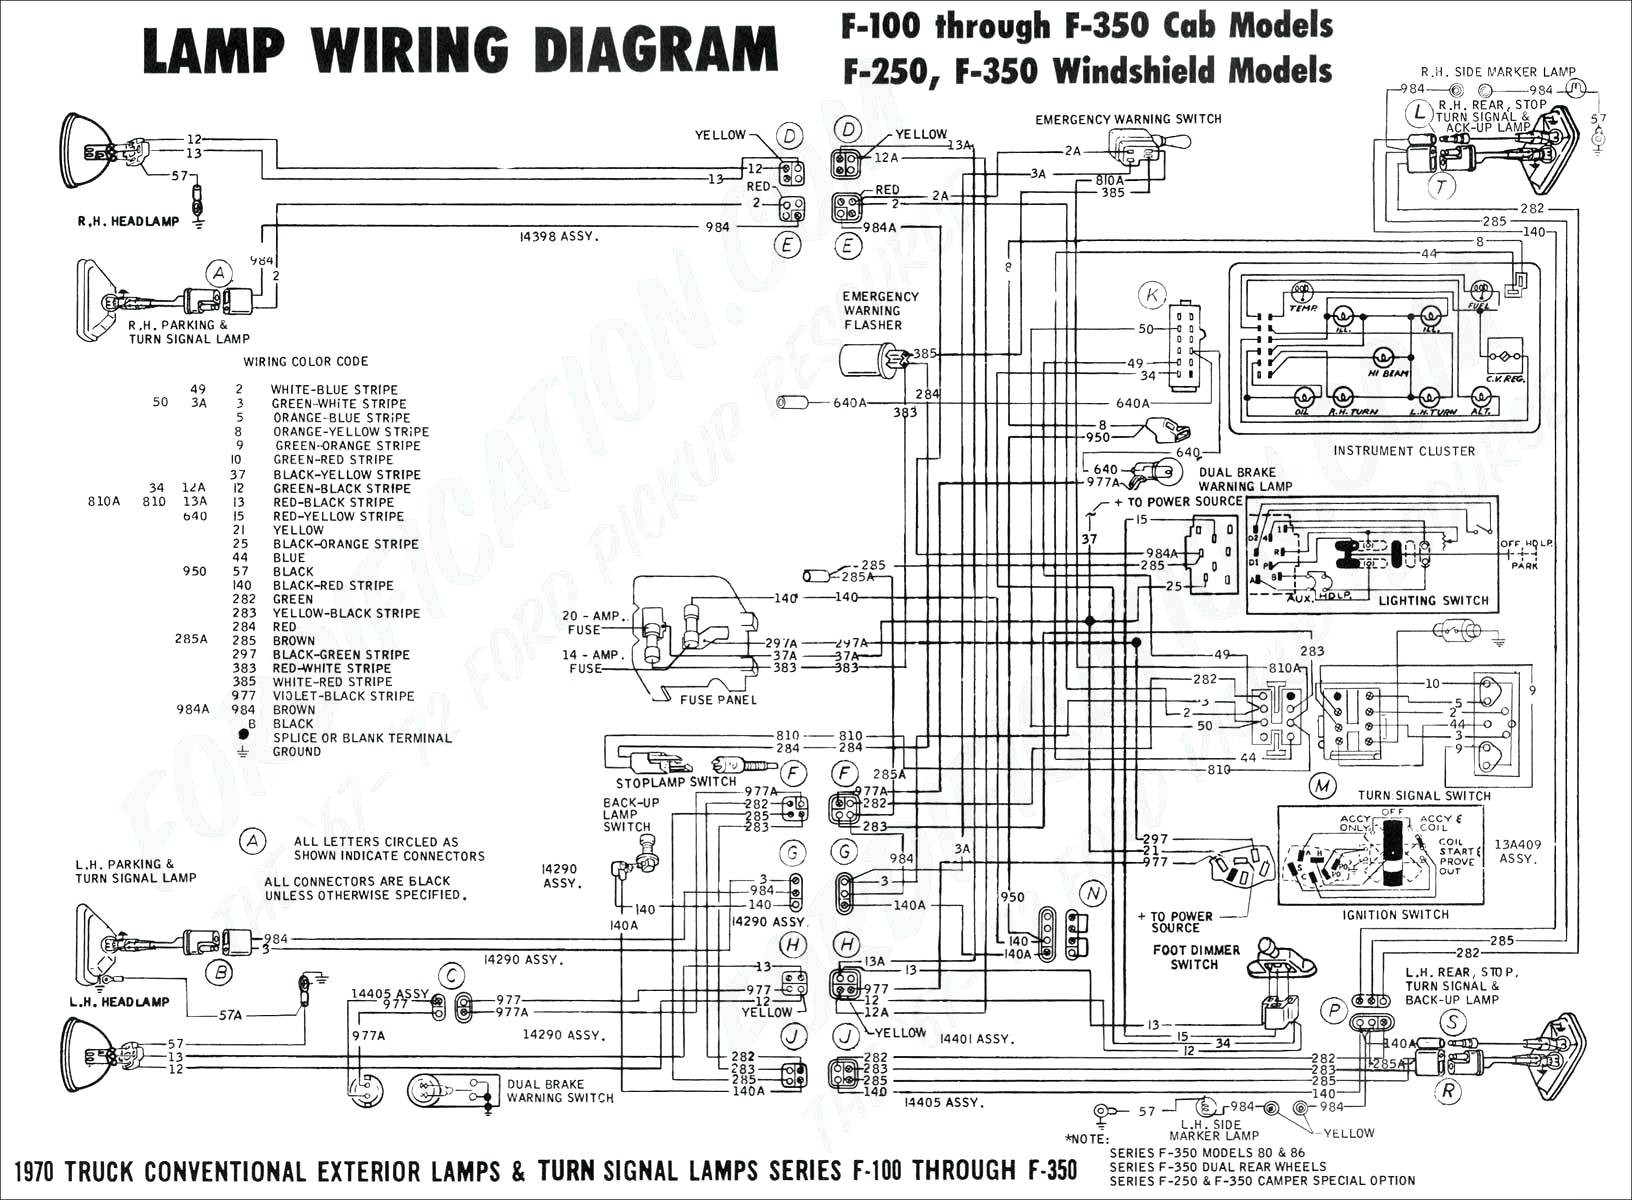 Ford 5 4 L Engine Diagram 1999 F150 Engine Wiring Data Wiring Diagrams • Of Ford 5 4 L Engine Diagram 1999 F150 Engine Wiring Data Wiring Diagrams •